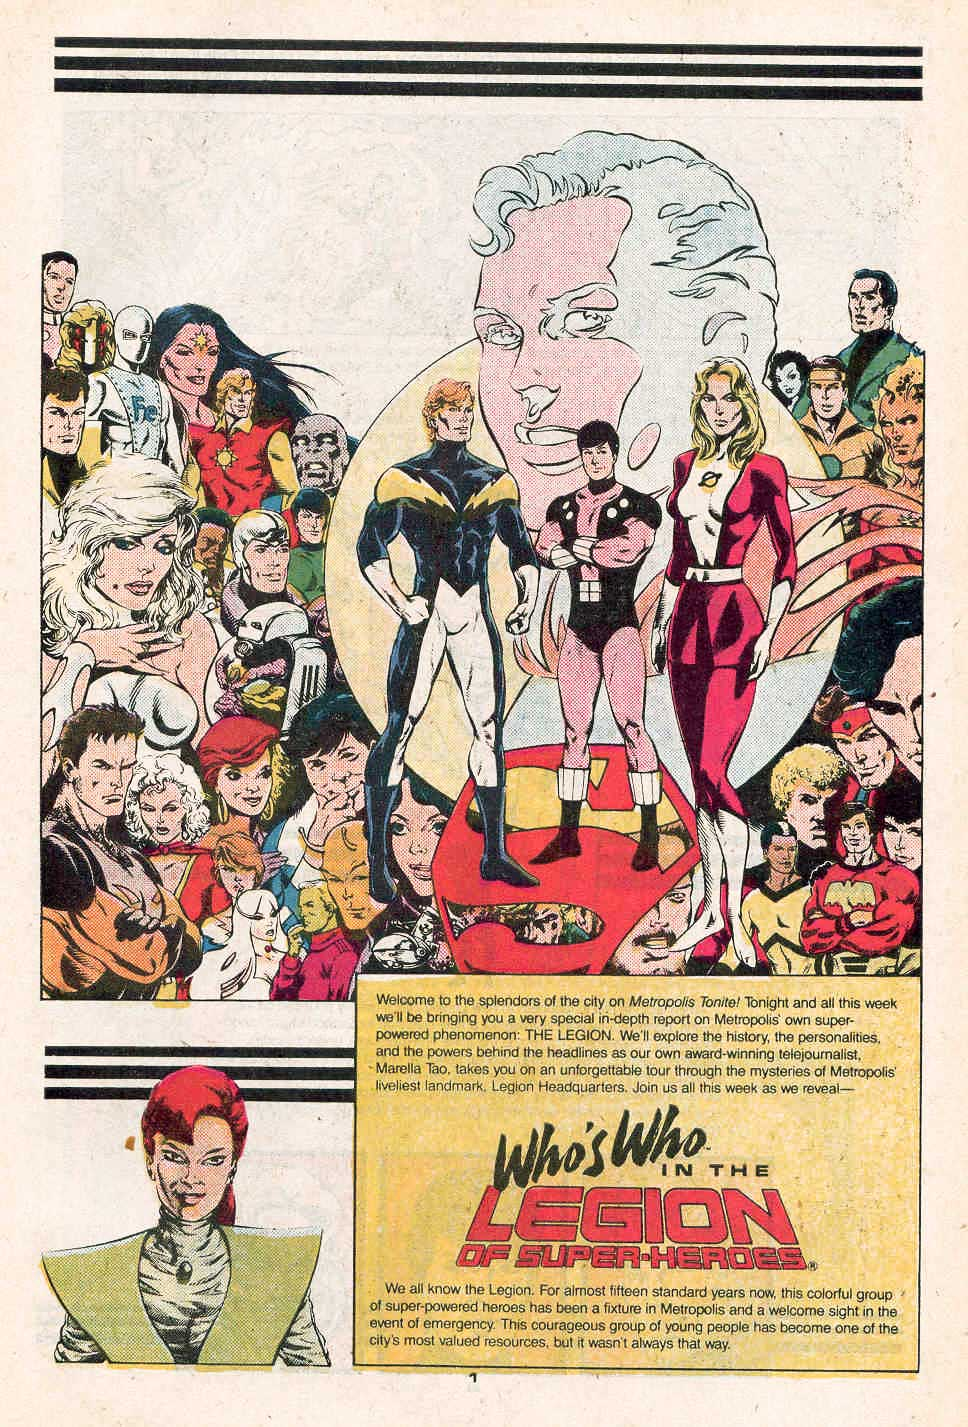 Who's Who in the Legion of Super-Heroes #1 art by Steve Lightle